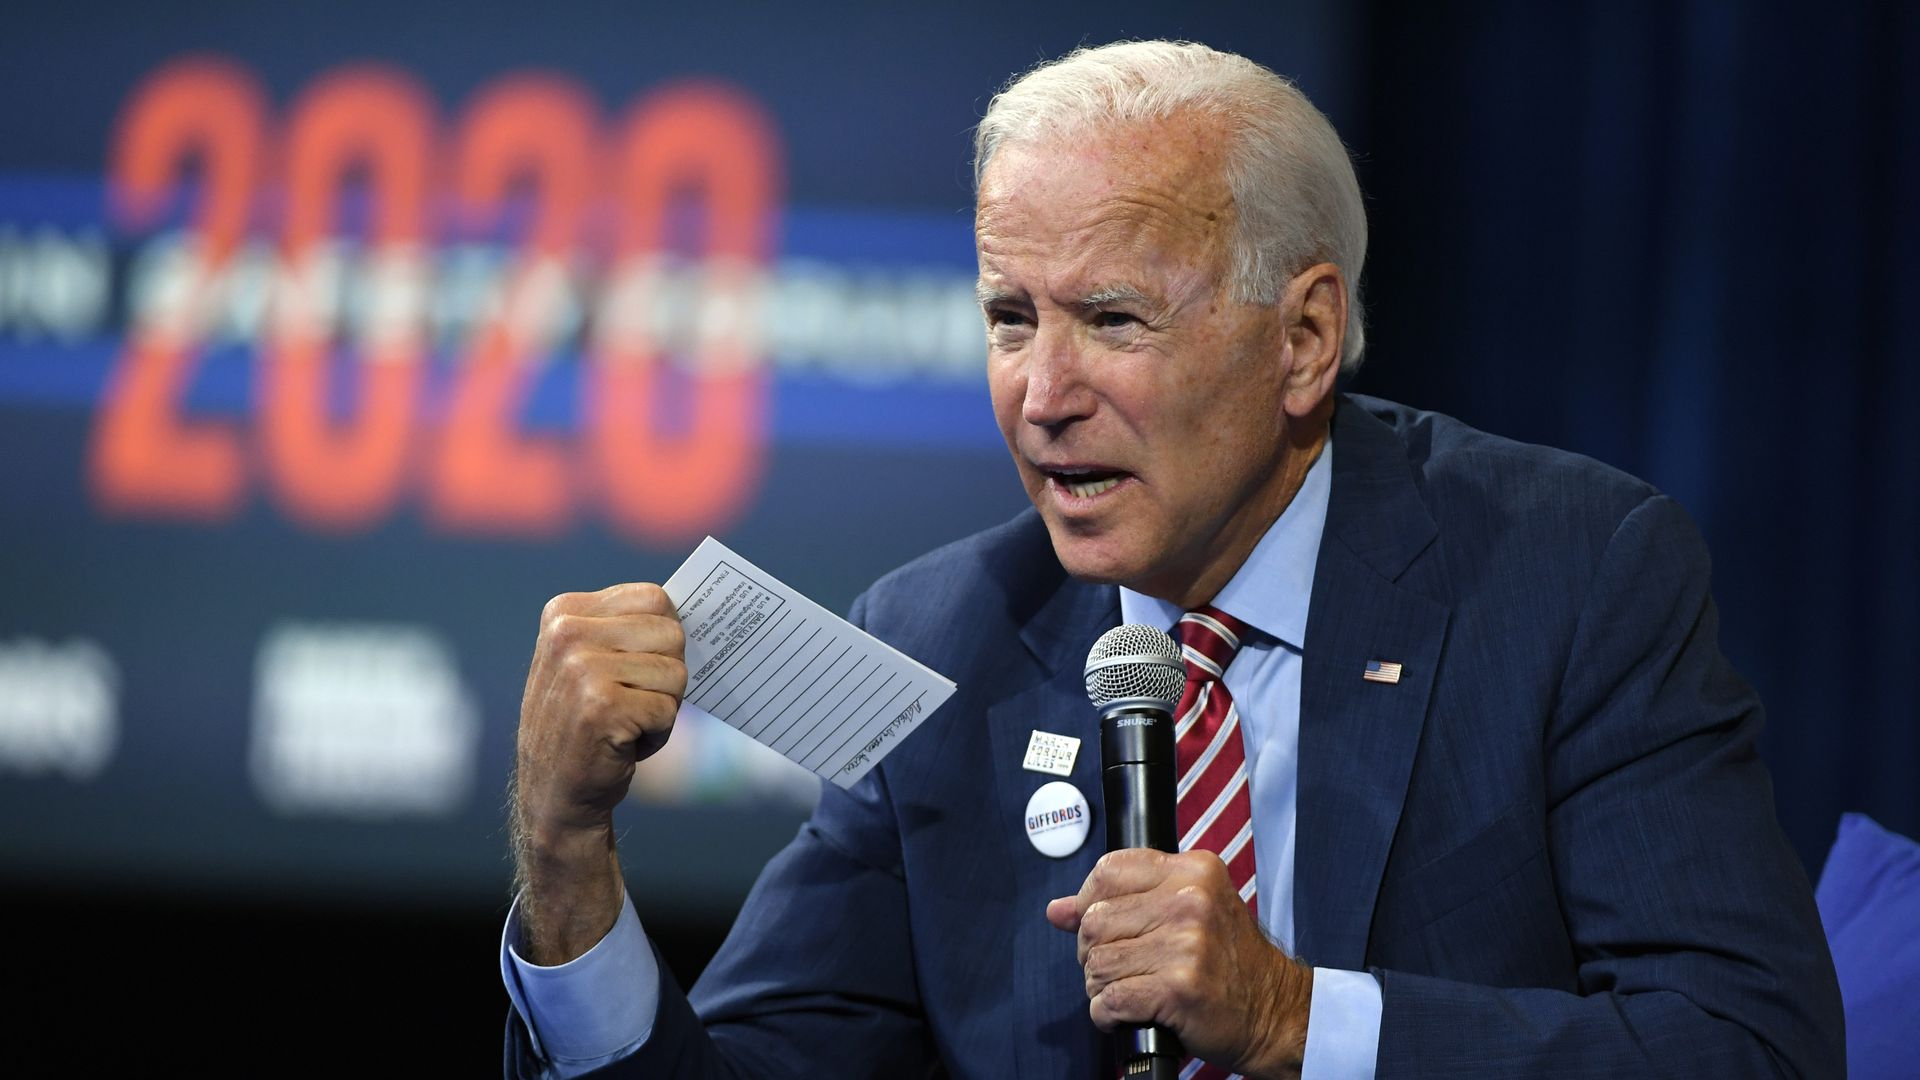 Democratic presidential candidate Joe Biden speaks during the 2020 Gun Safety Forum hosted by gun control activist groups Giffords and March for Our Lives at Enclave on October 2